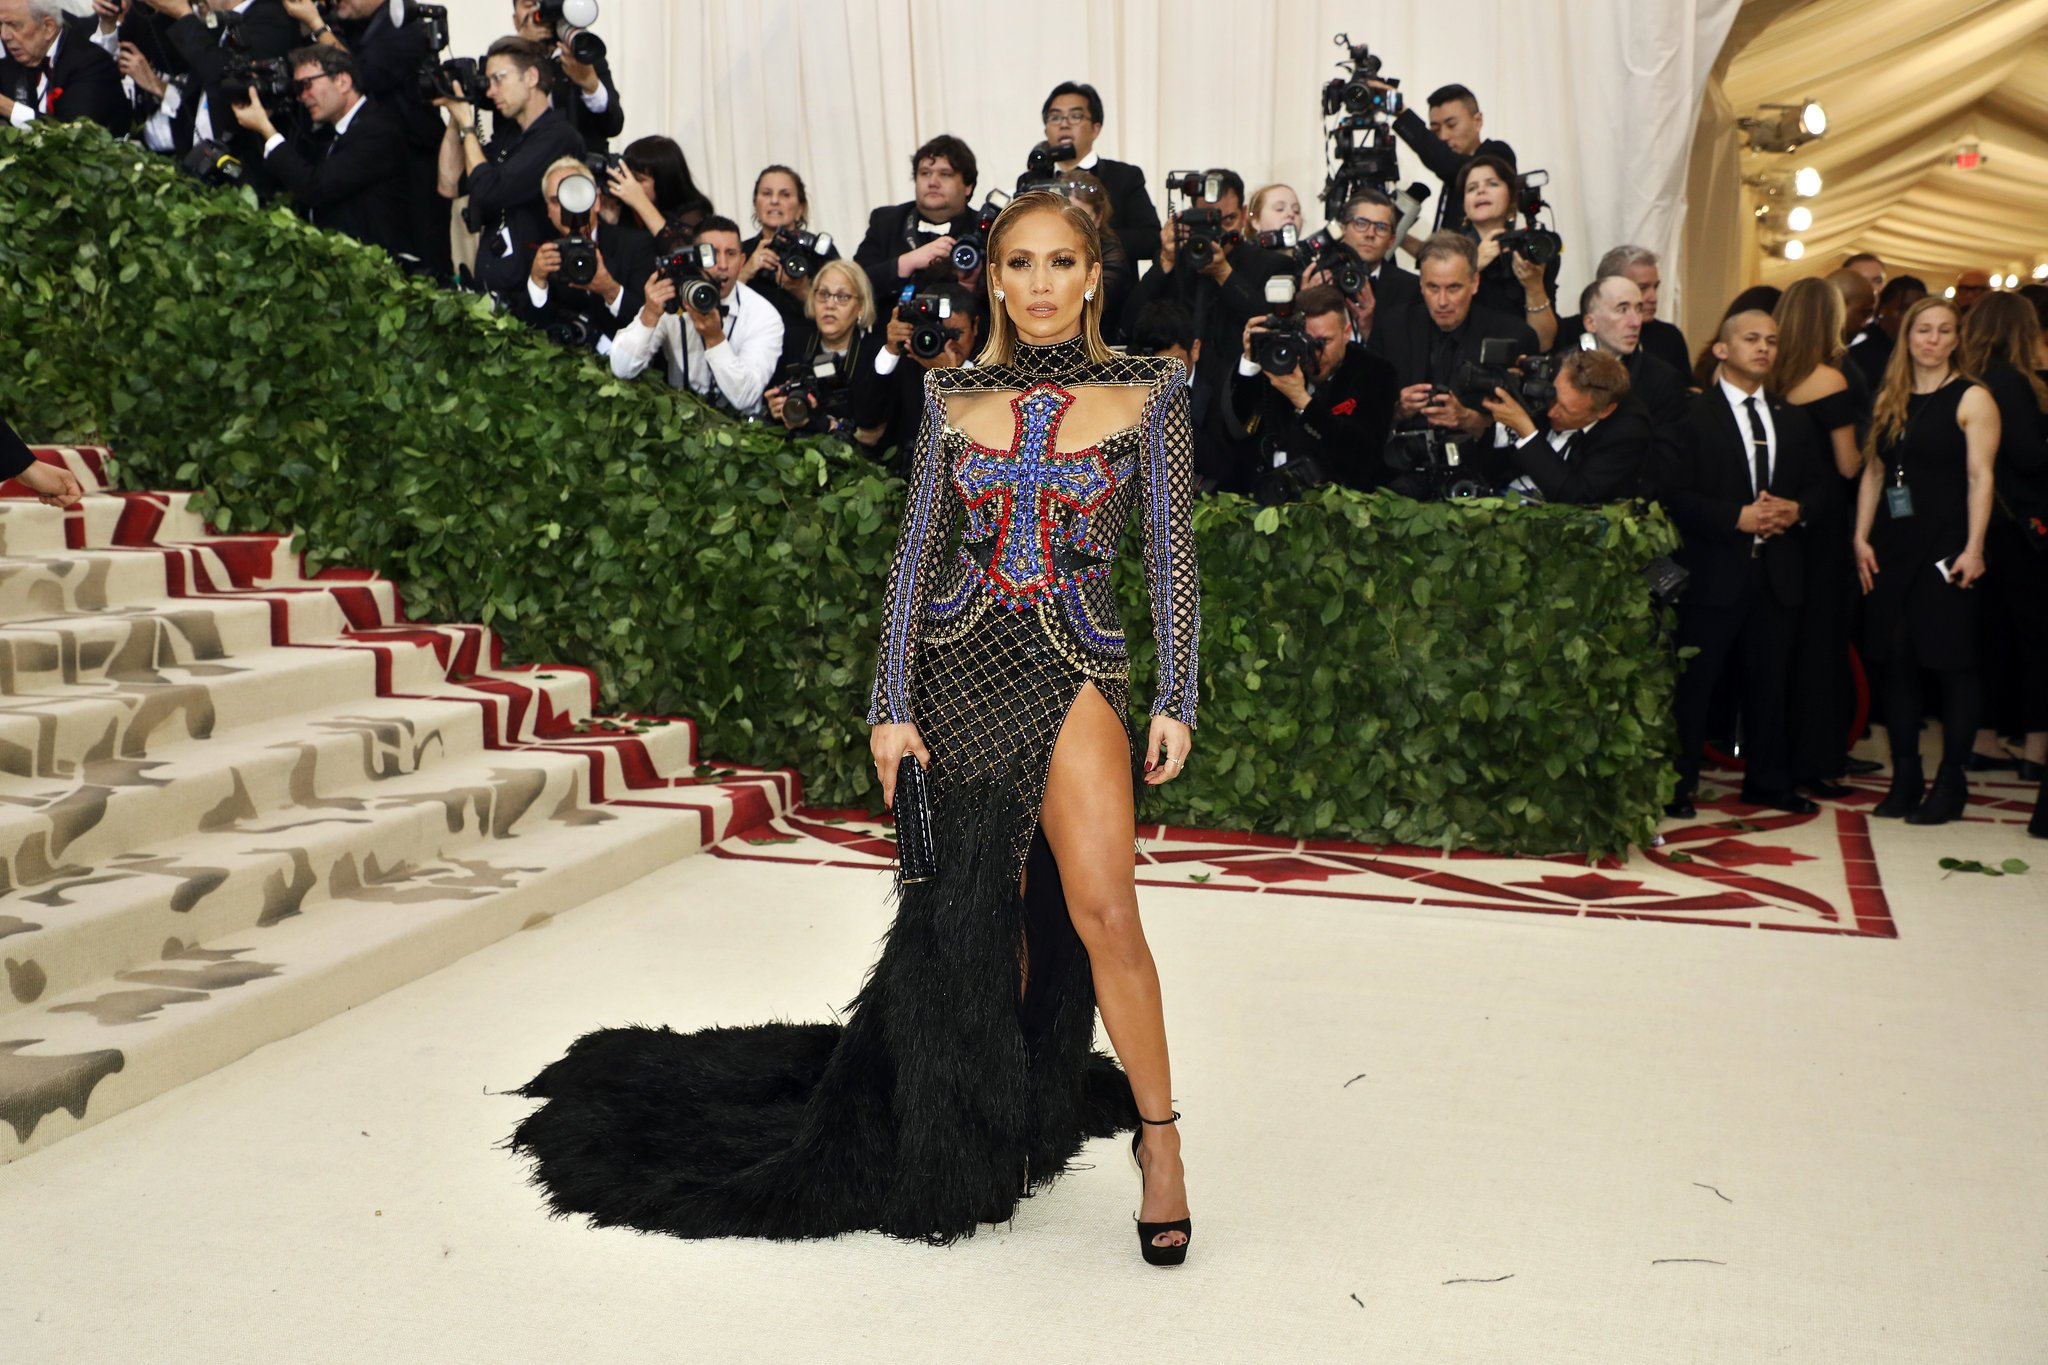 Jennifer Lopez | Image via The New York Times